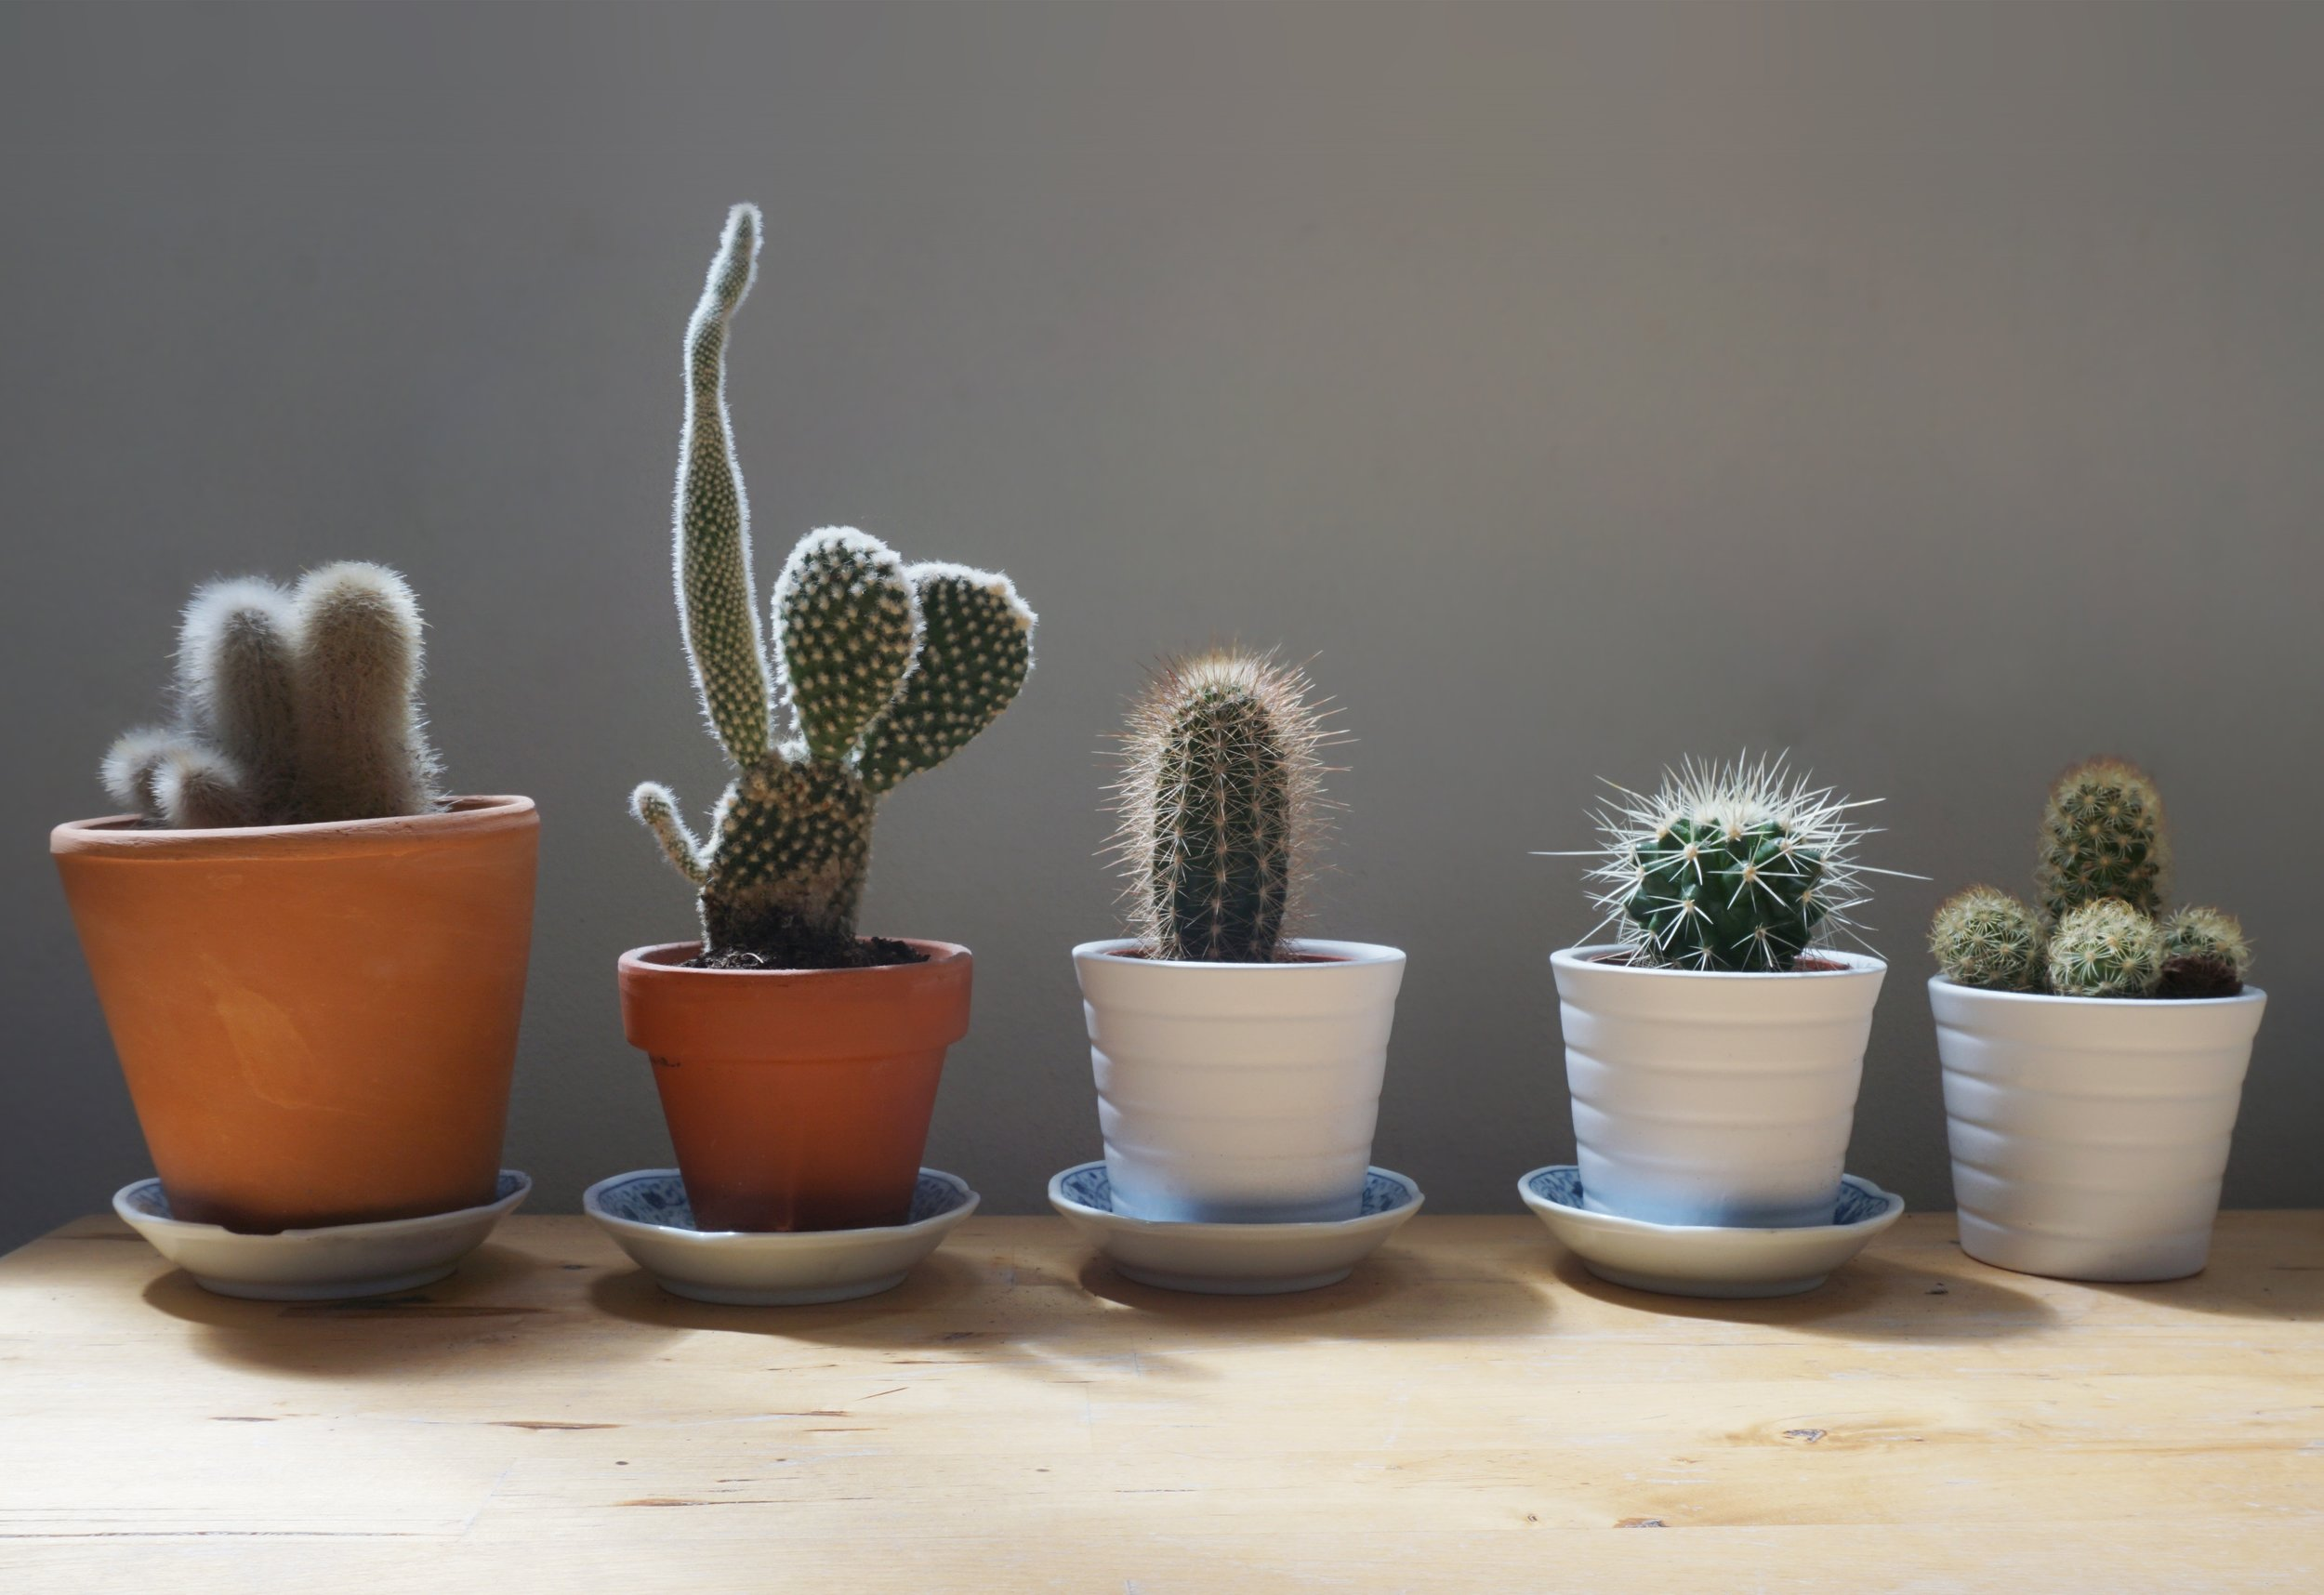 Some say cacti and succulents don't need to be fertilized. In my world, I'll give them a sip as I'm passing by, why not? If I can get my  Opuntias  flower, I'd be happy!